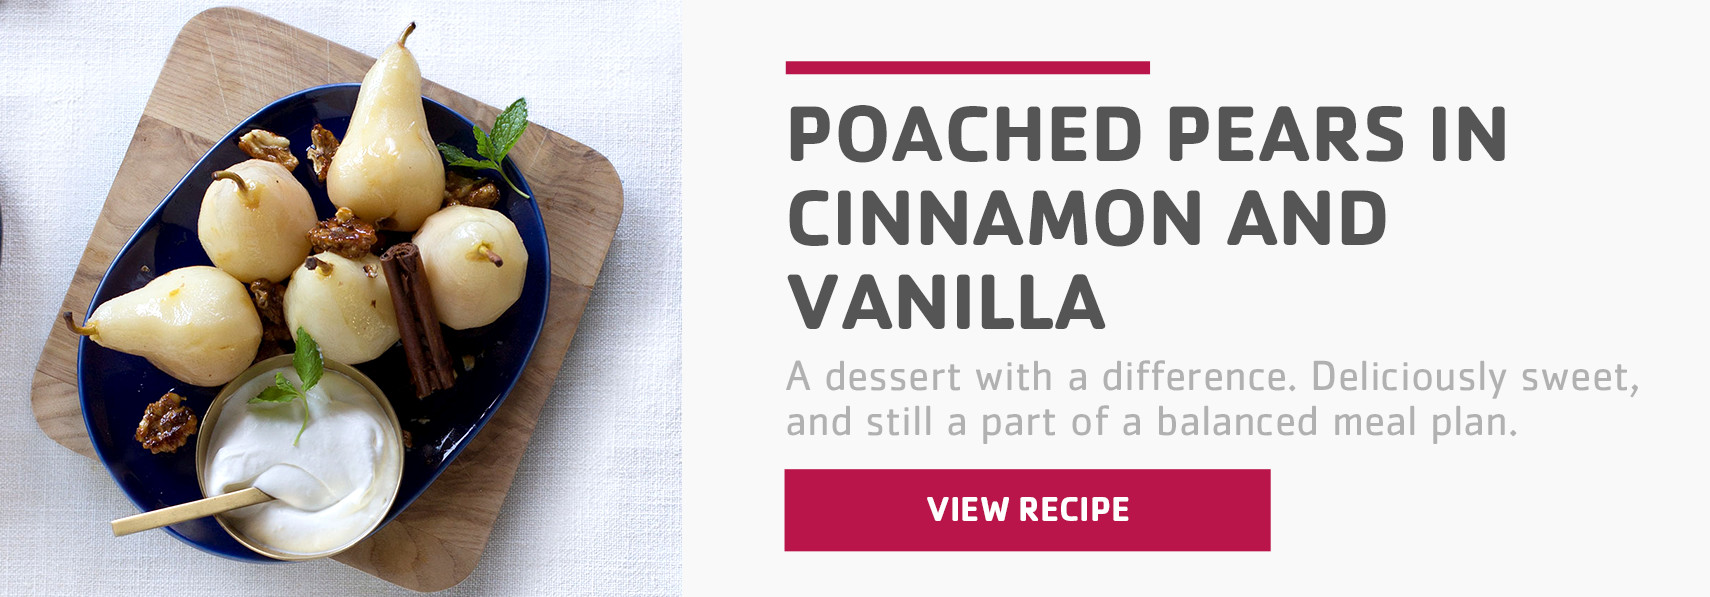 Poached pears in cinnamon and vanilla recipe listing page banner.jpg